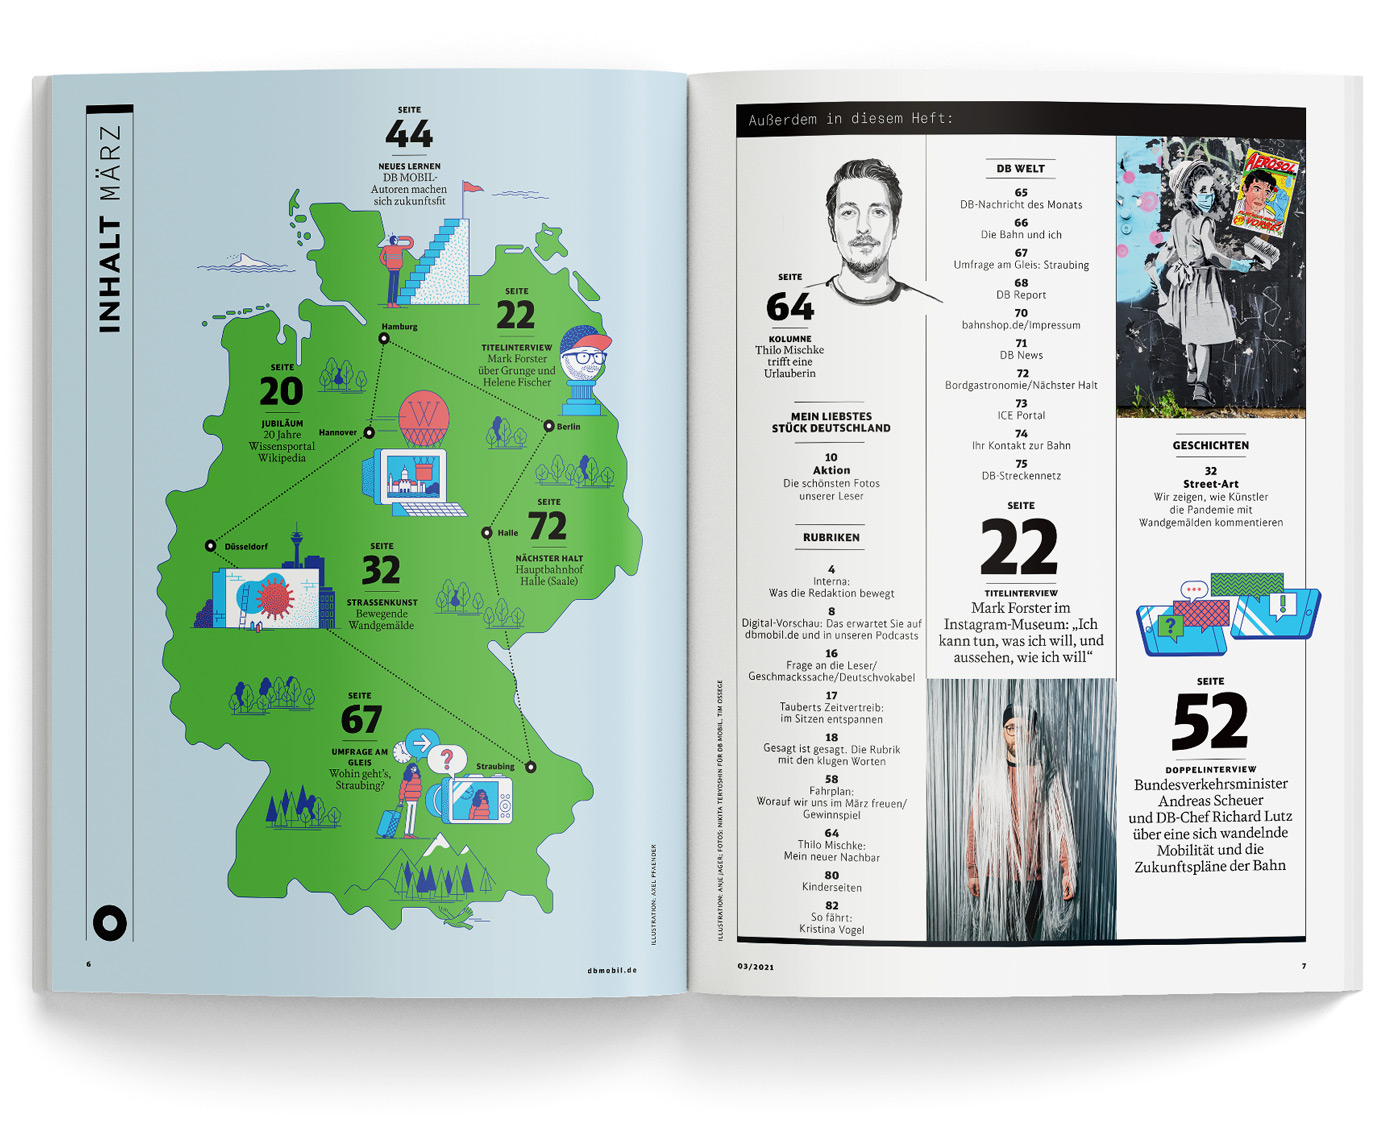 Spread of DB Mobil magazine content page